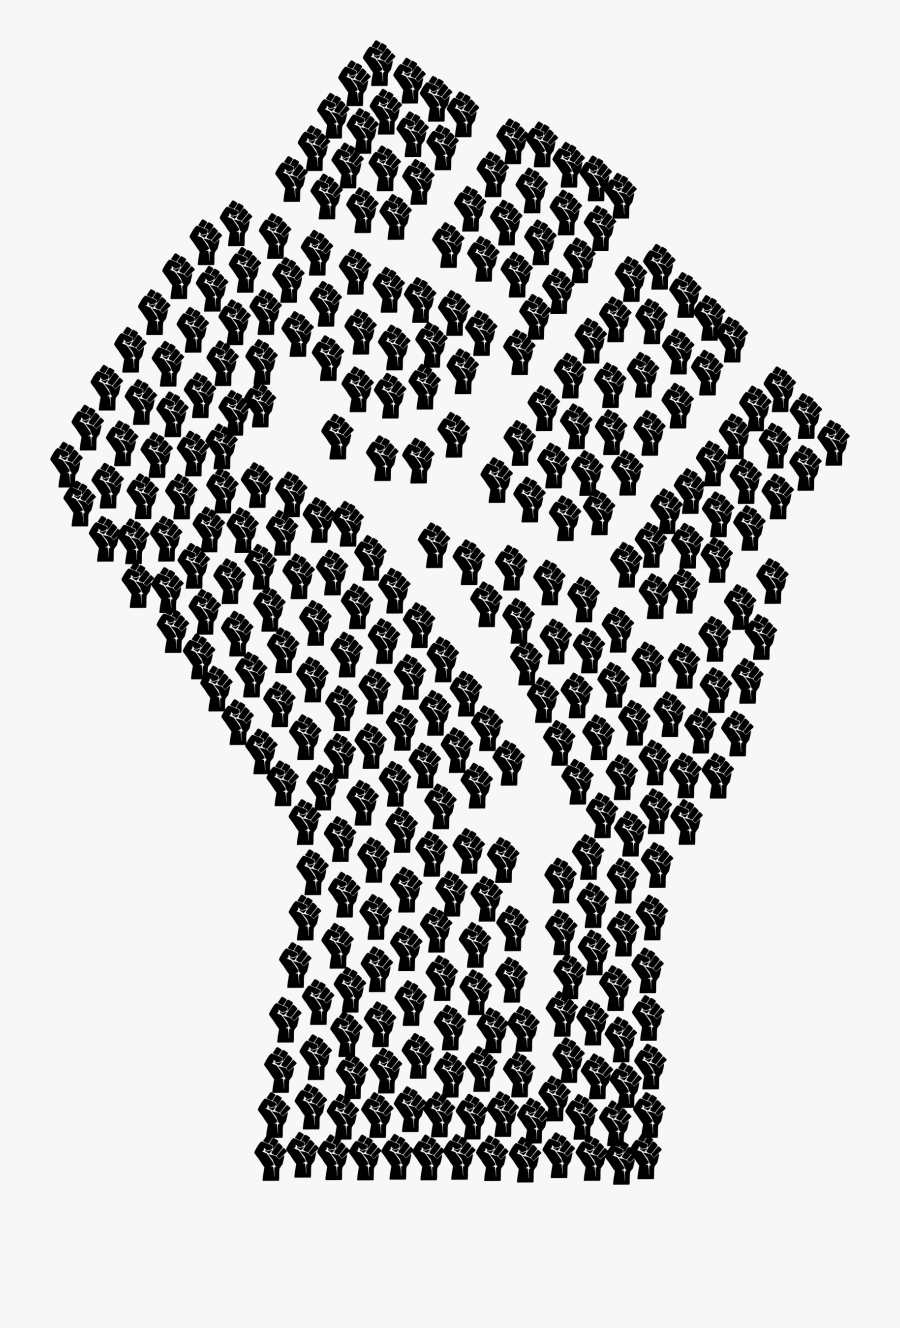 Fist Hand Clenched Free Picture - Black Fist Clip Art, Transparent Clipart